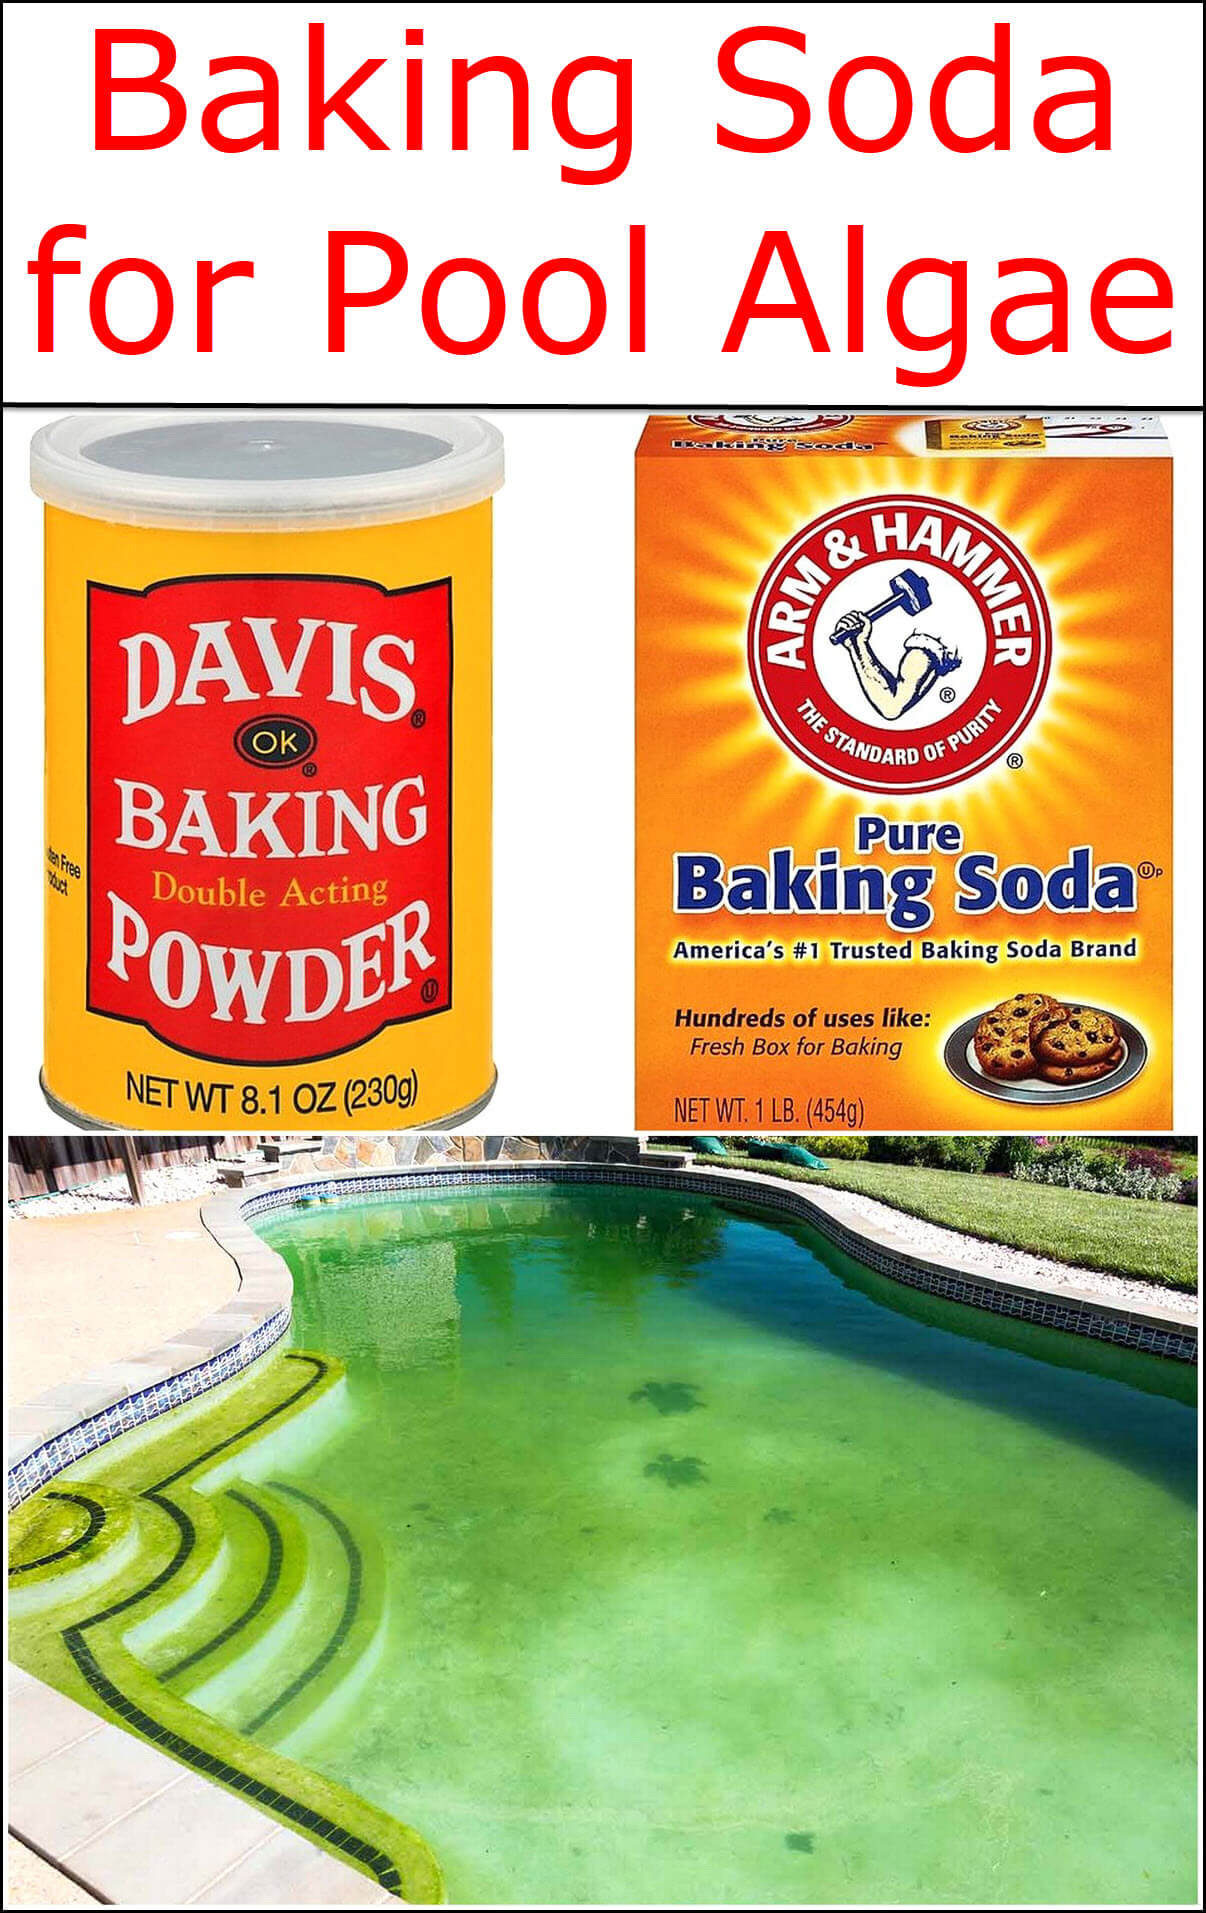 baking soda for pool algae baking soda uses and diy home remedies. Black Bedroom Furniture Sets. Home Design Ideas